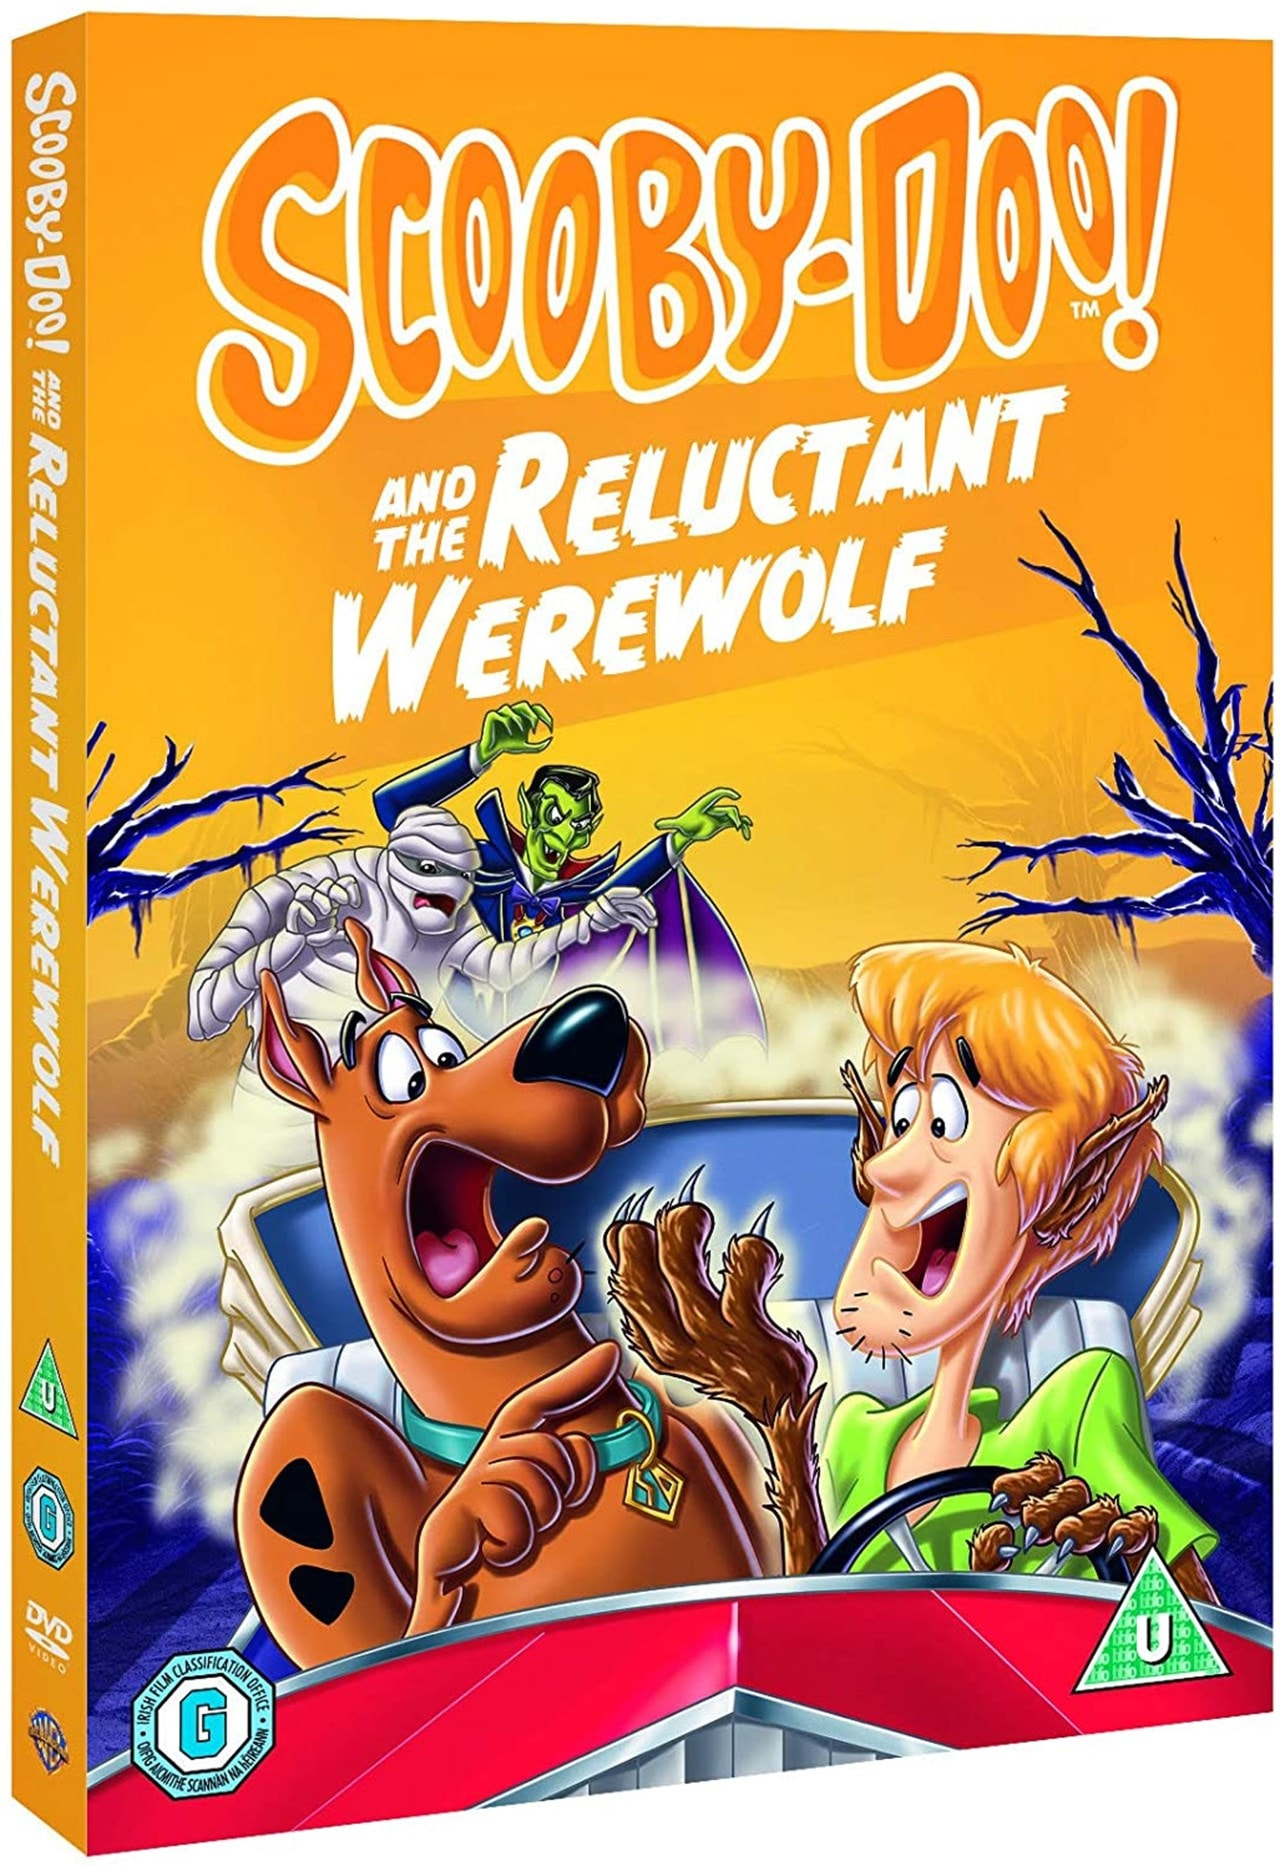 Scooby-Doo: Scooby-Doo and the Reluctant Werewolf - 2